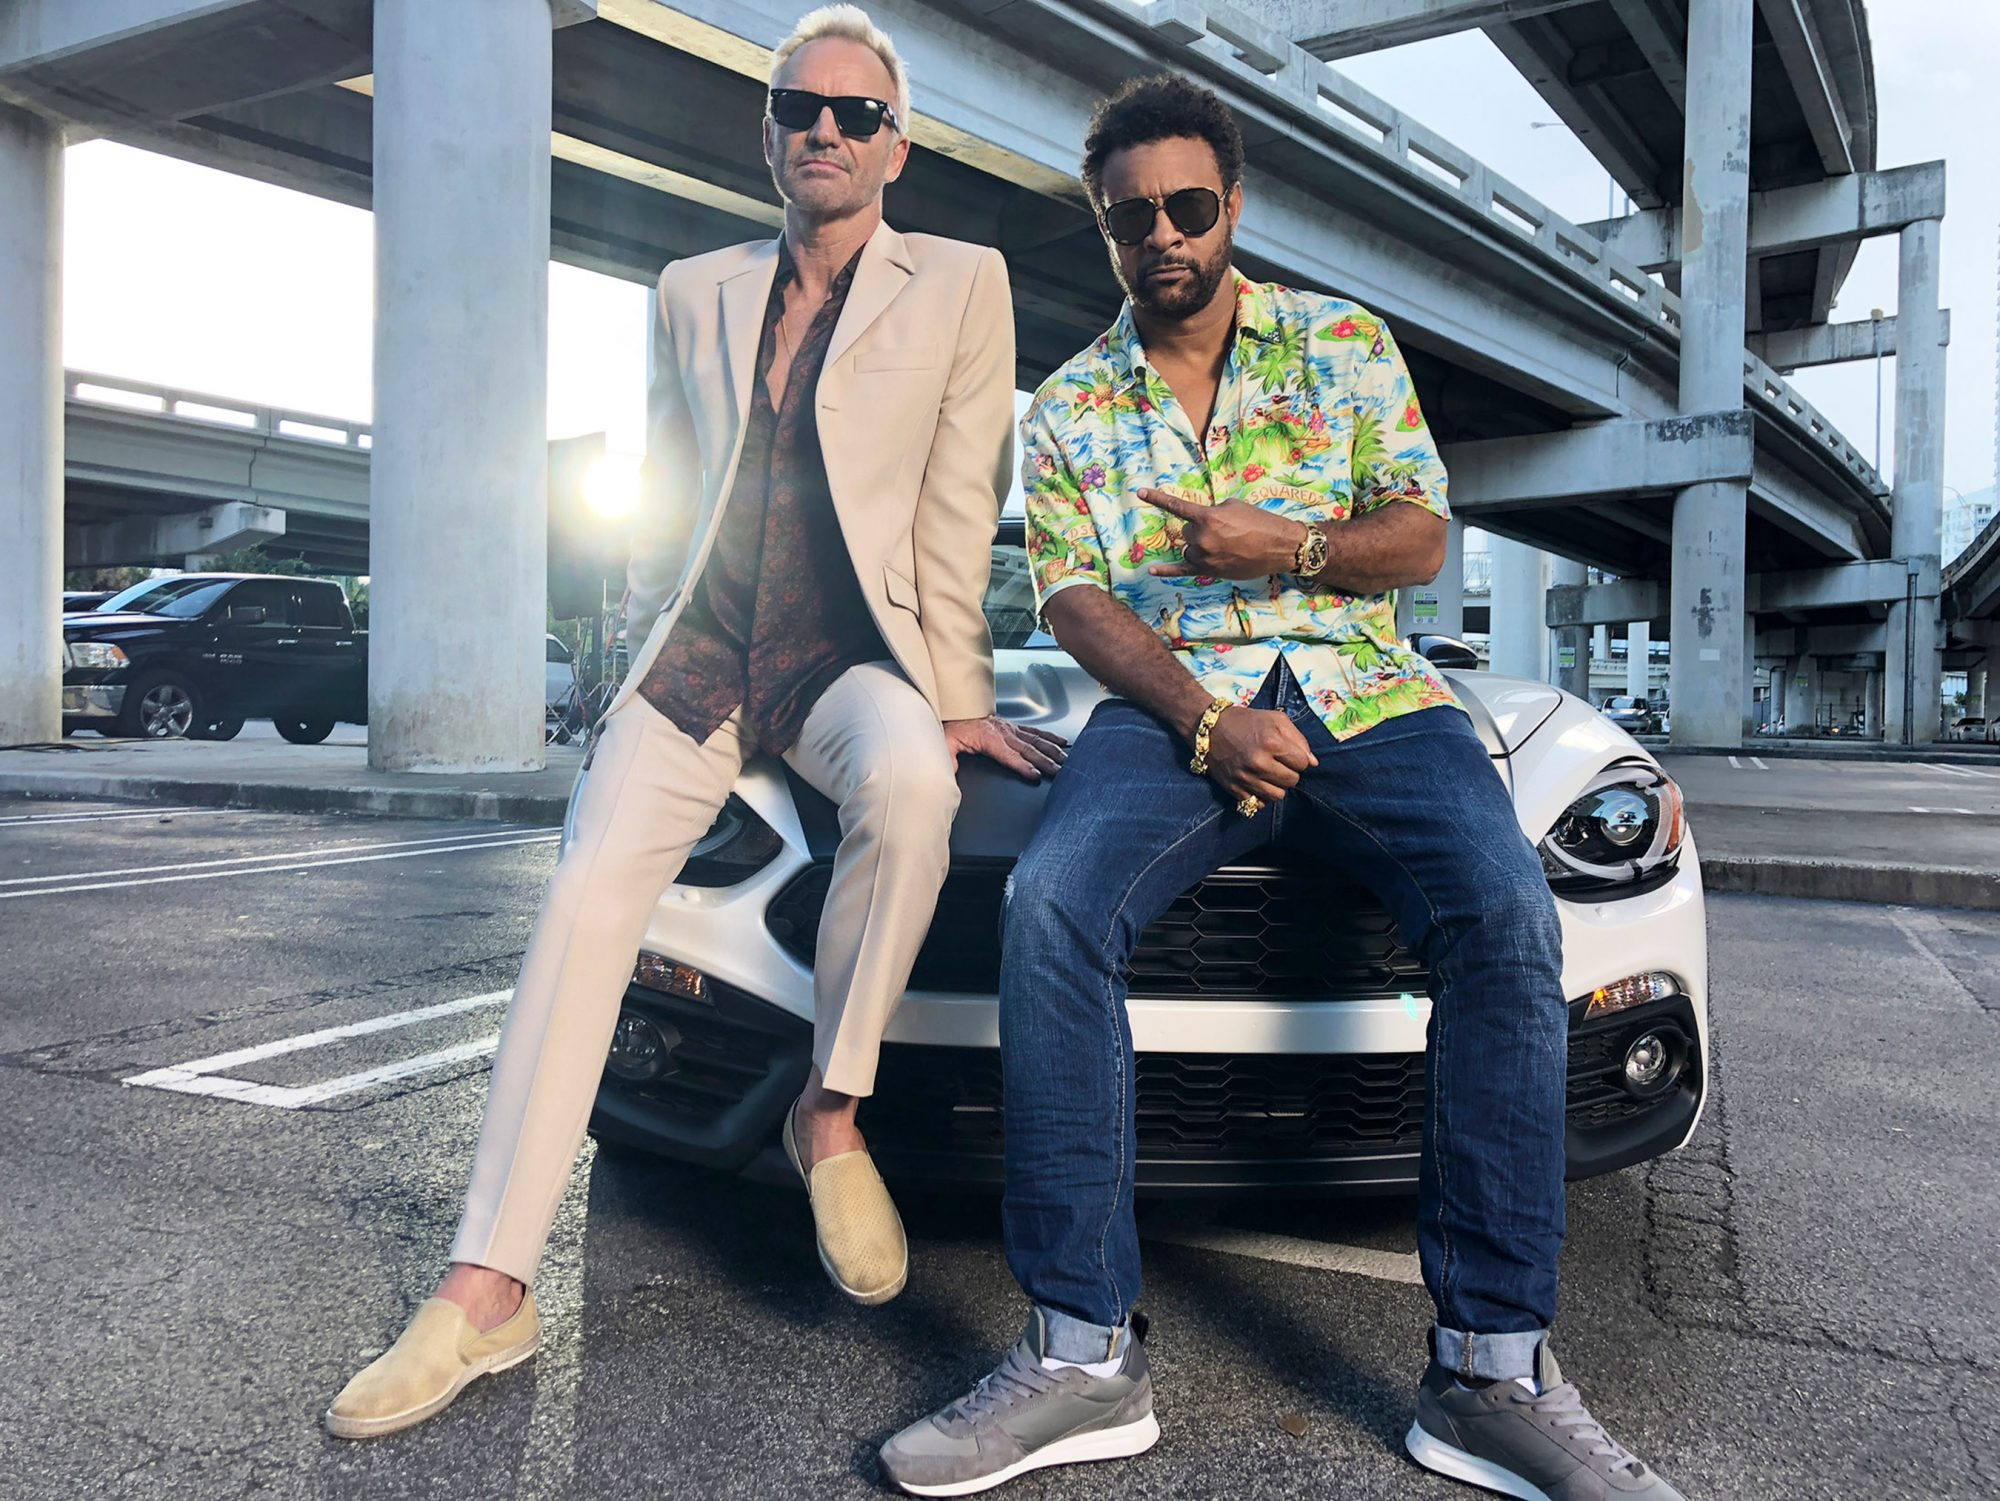 Sting and Shaggy go all Miami Vice in the latest installment of their bromance